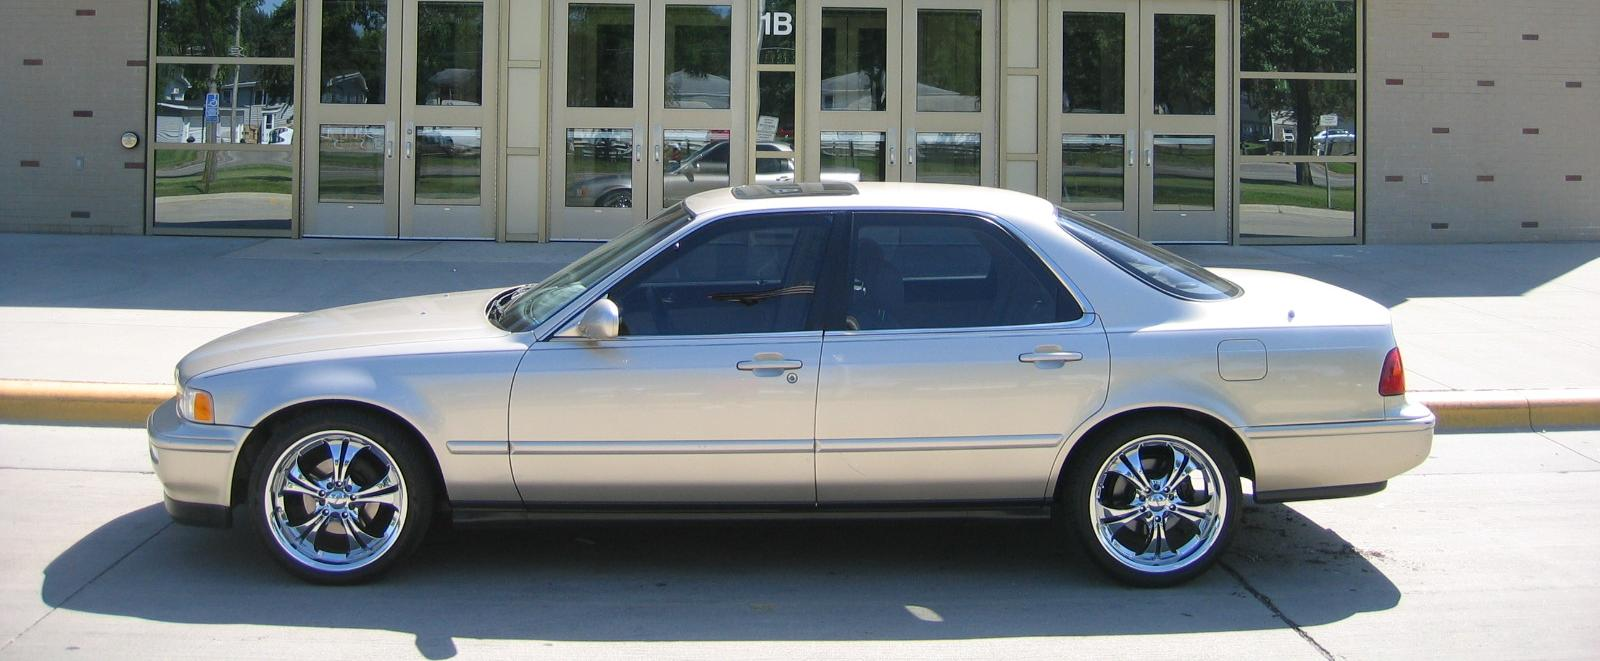 1994 Acura Legend - Pictures - CarGurus